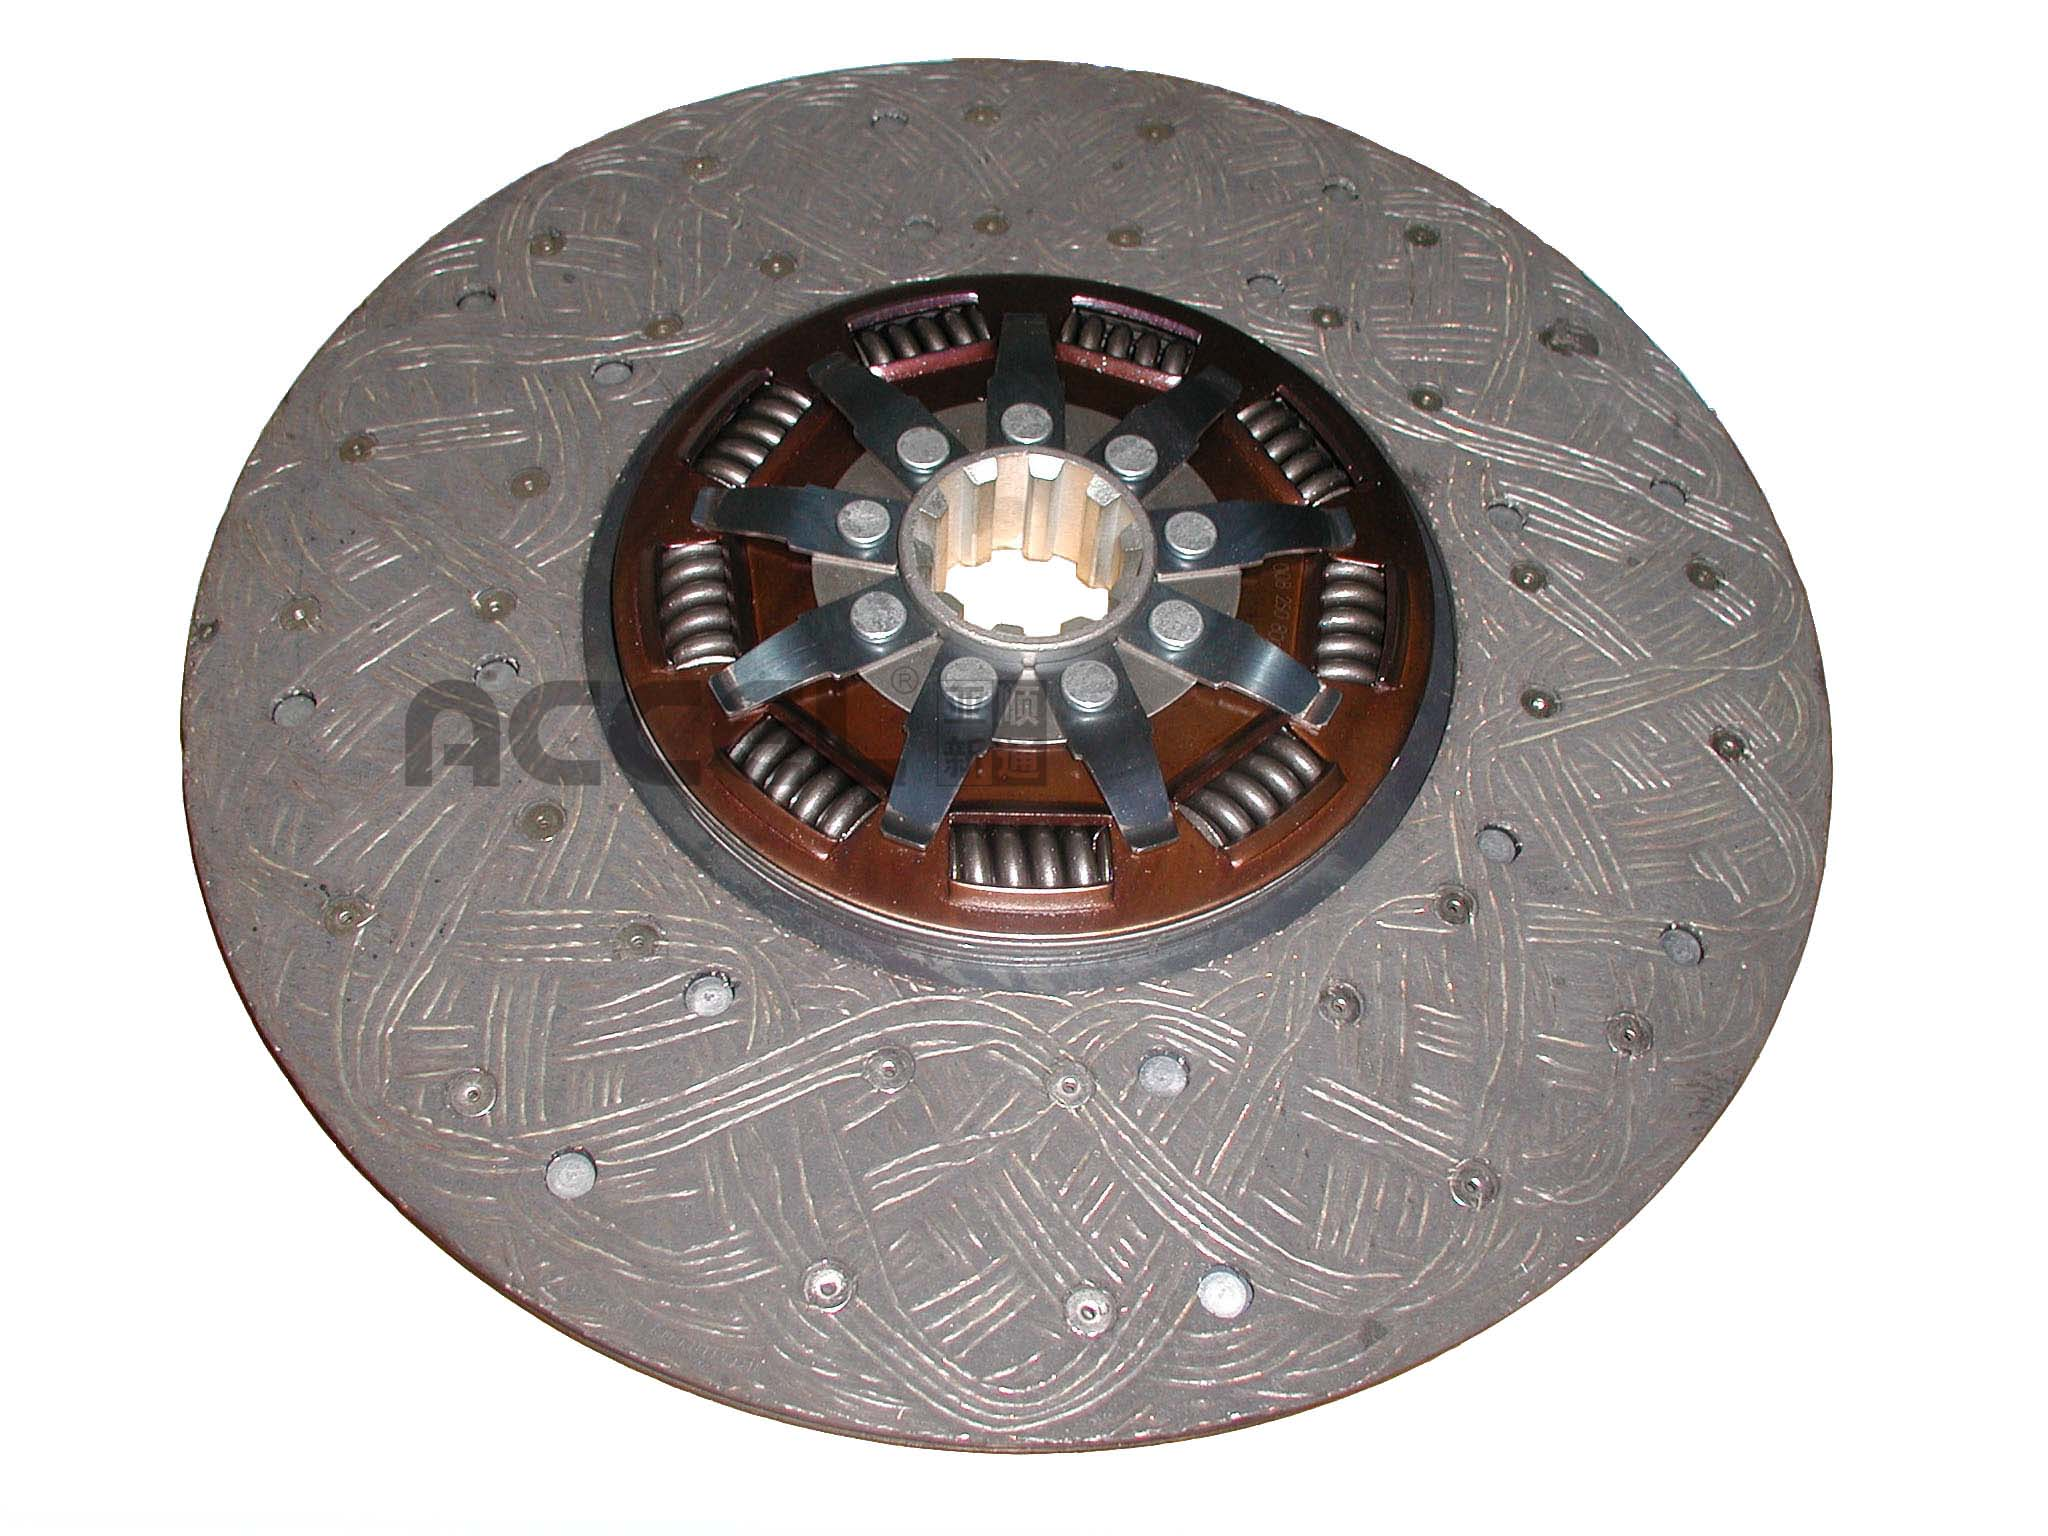 Clutch Disc/OE:008 250 8003/380*200*10*50.8/ABZ-014/MERCEDES BENZ/CL0535/1861 699136